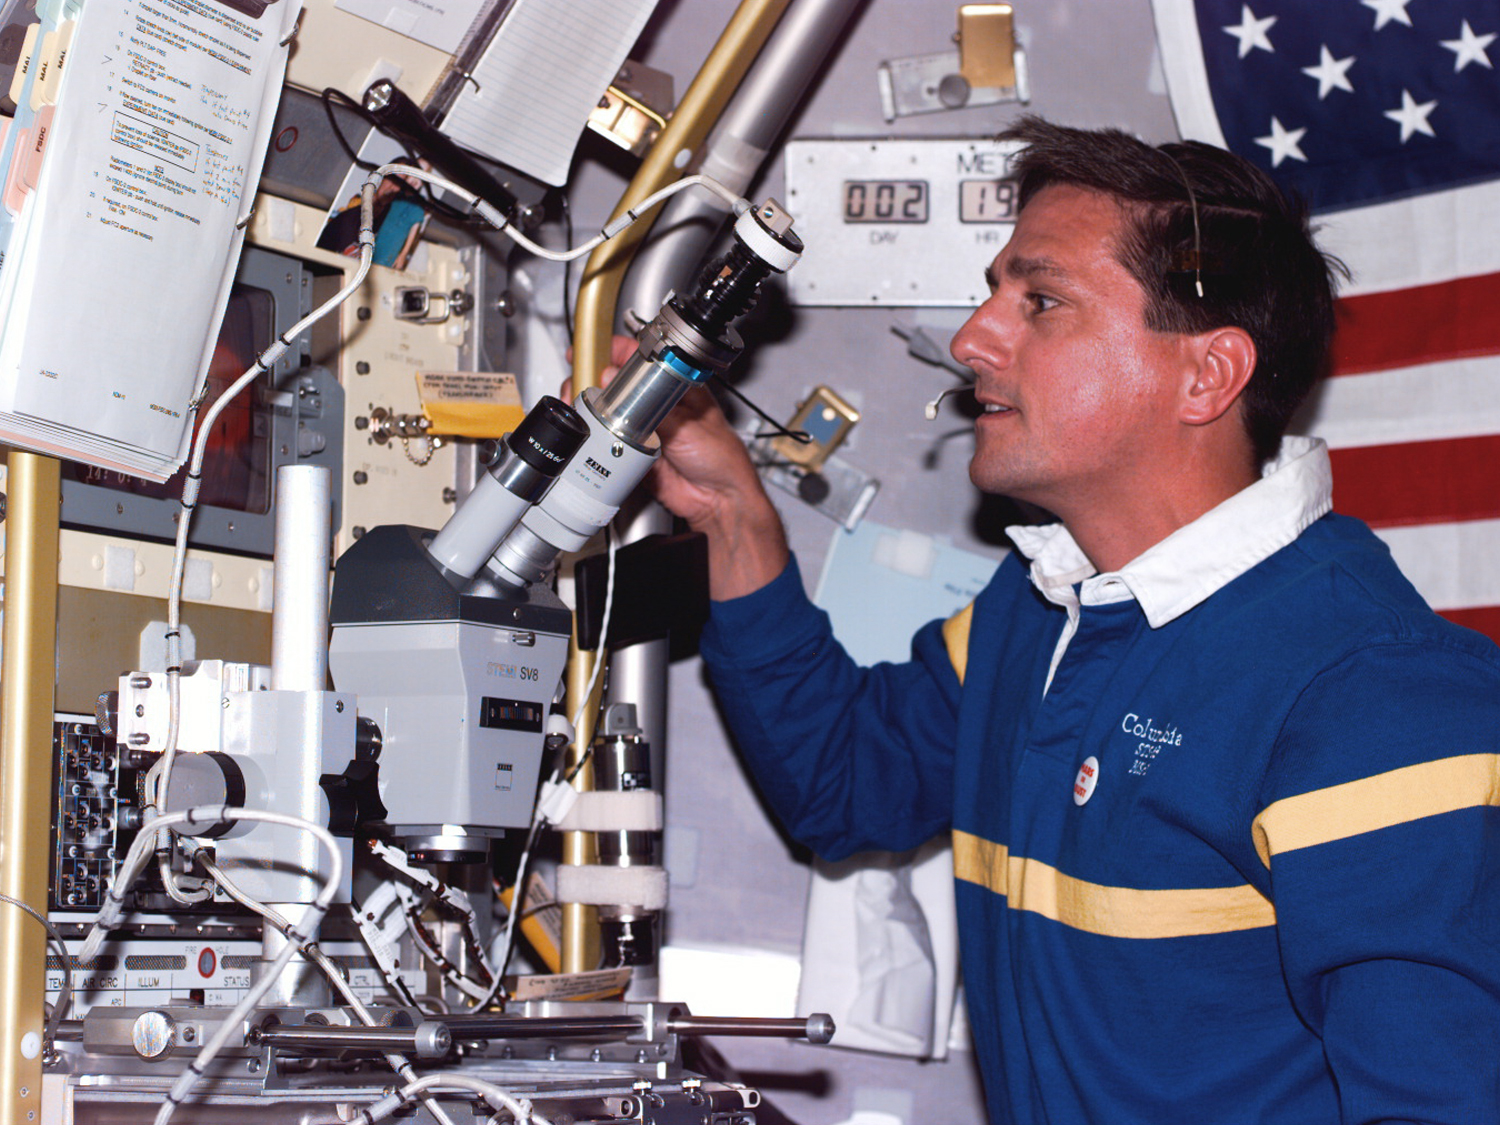 Using microscope at the microgravity glove box facility in Spacelab.